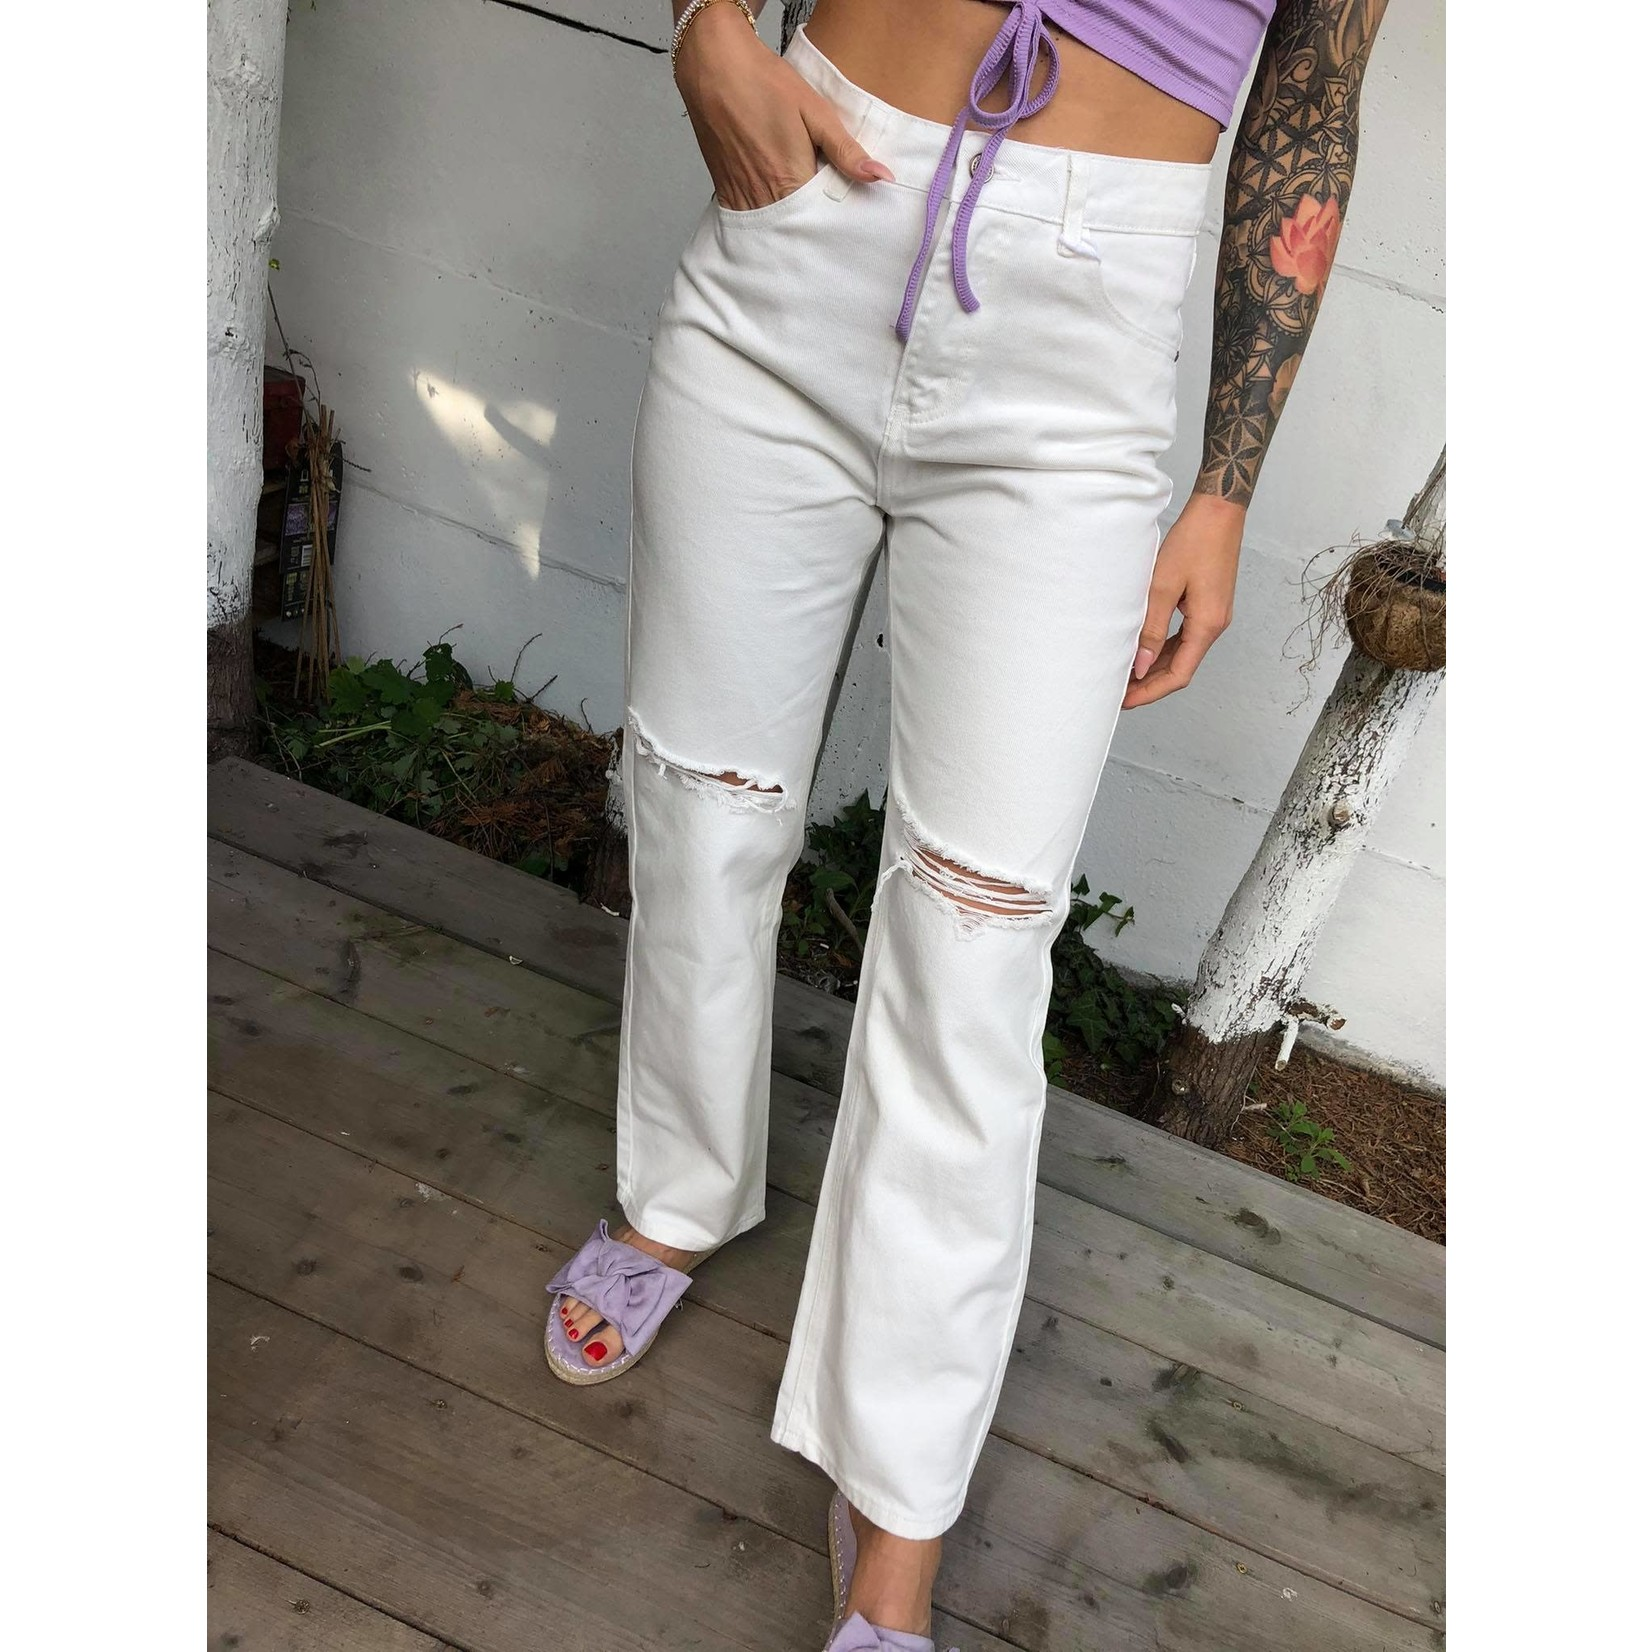 Straight ripped jeans white